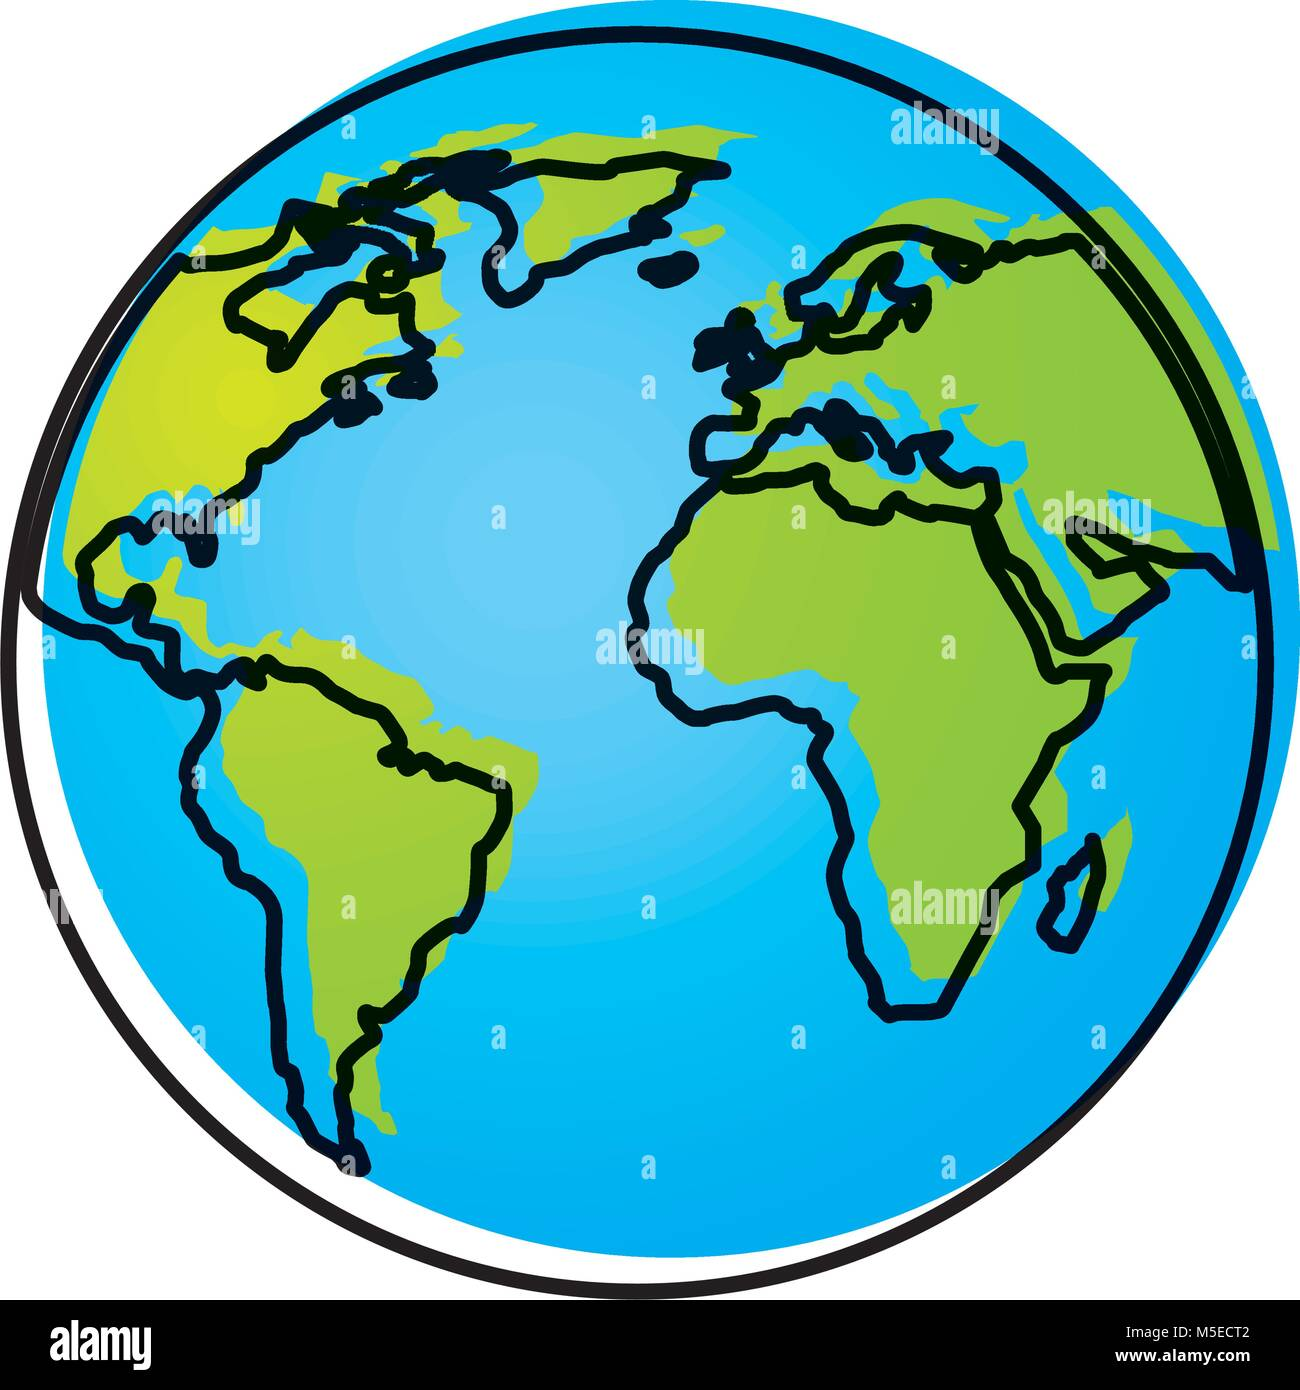 globe world earth planet map icon Stock Vector Art ... on across the world map, world atlas, world map 2014, world grid map, world map continents, world map europe, world map desktop, nasa world wind, the earth map, world map showing all countries, world wall map, world map with latitude and longitude, virtual world, earth3d, 3d world atlas, bing maps, worl map, flat world map, world map printable, world united states map, life with playstation, world map poster, old world map, england map, cool world map, bing maps platform,